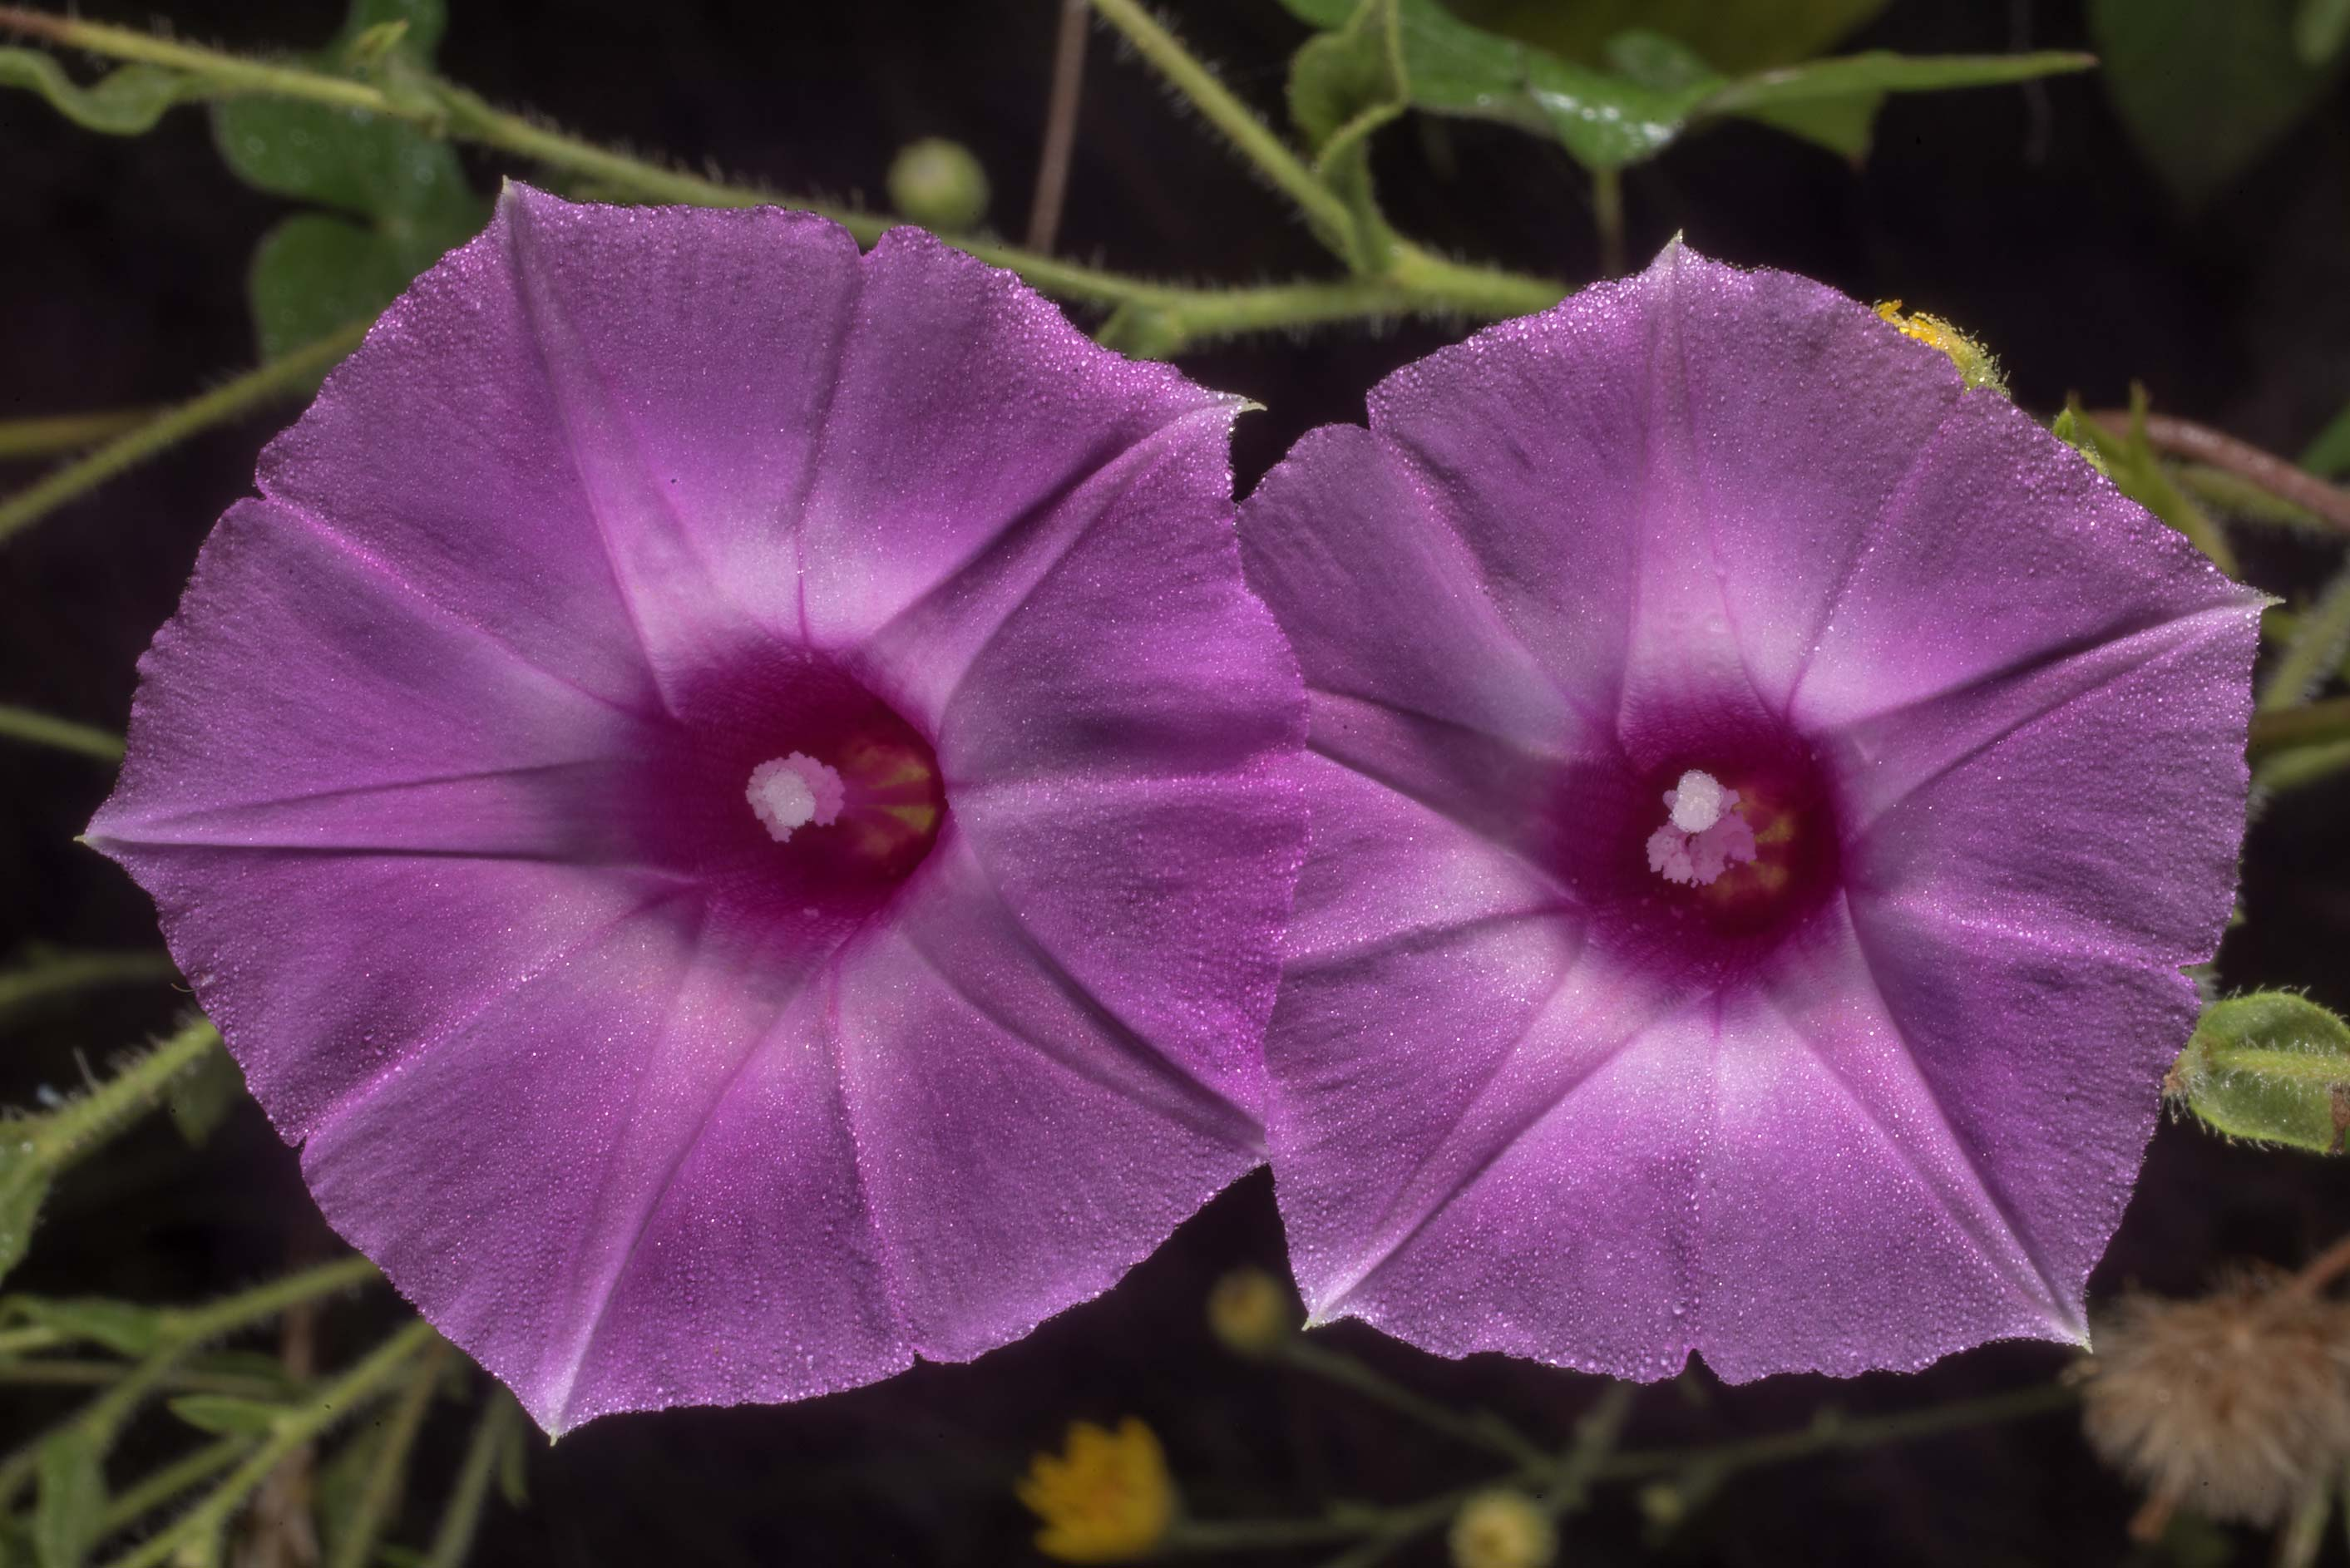 Flowers of Morning glory (tievine, Ipomoea...State Historic Site. Washington, Texas